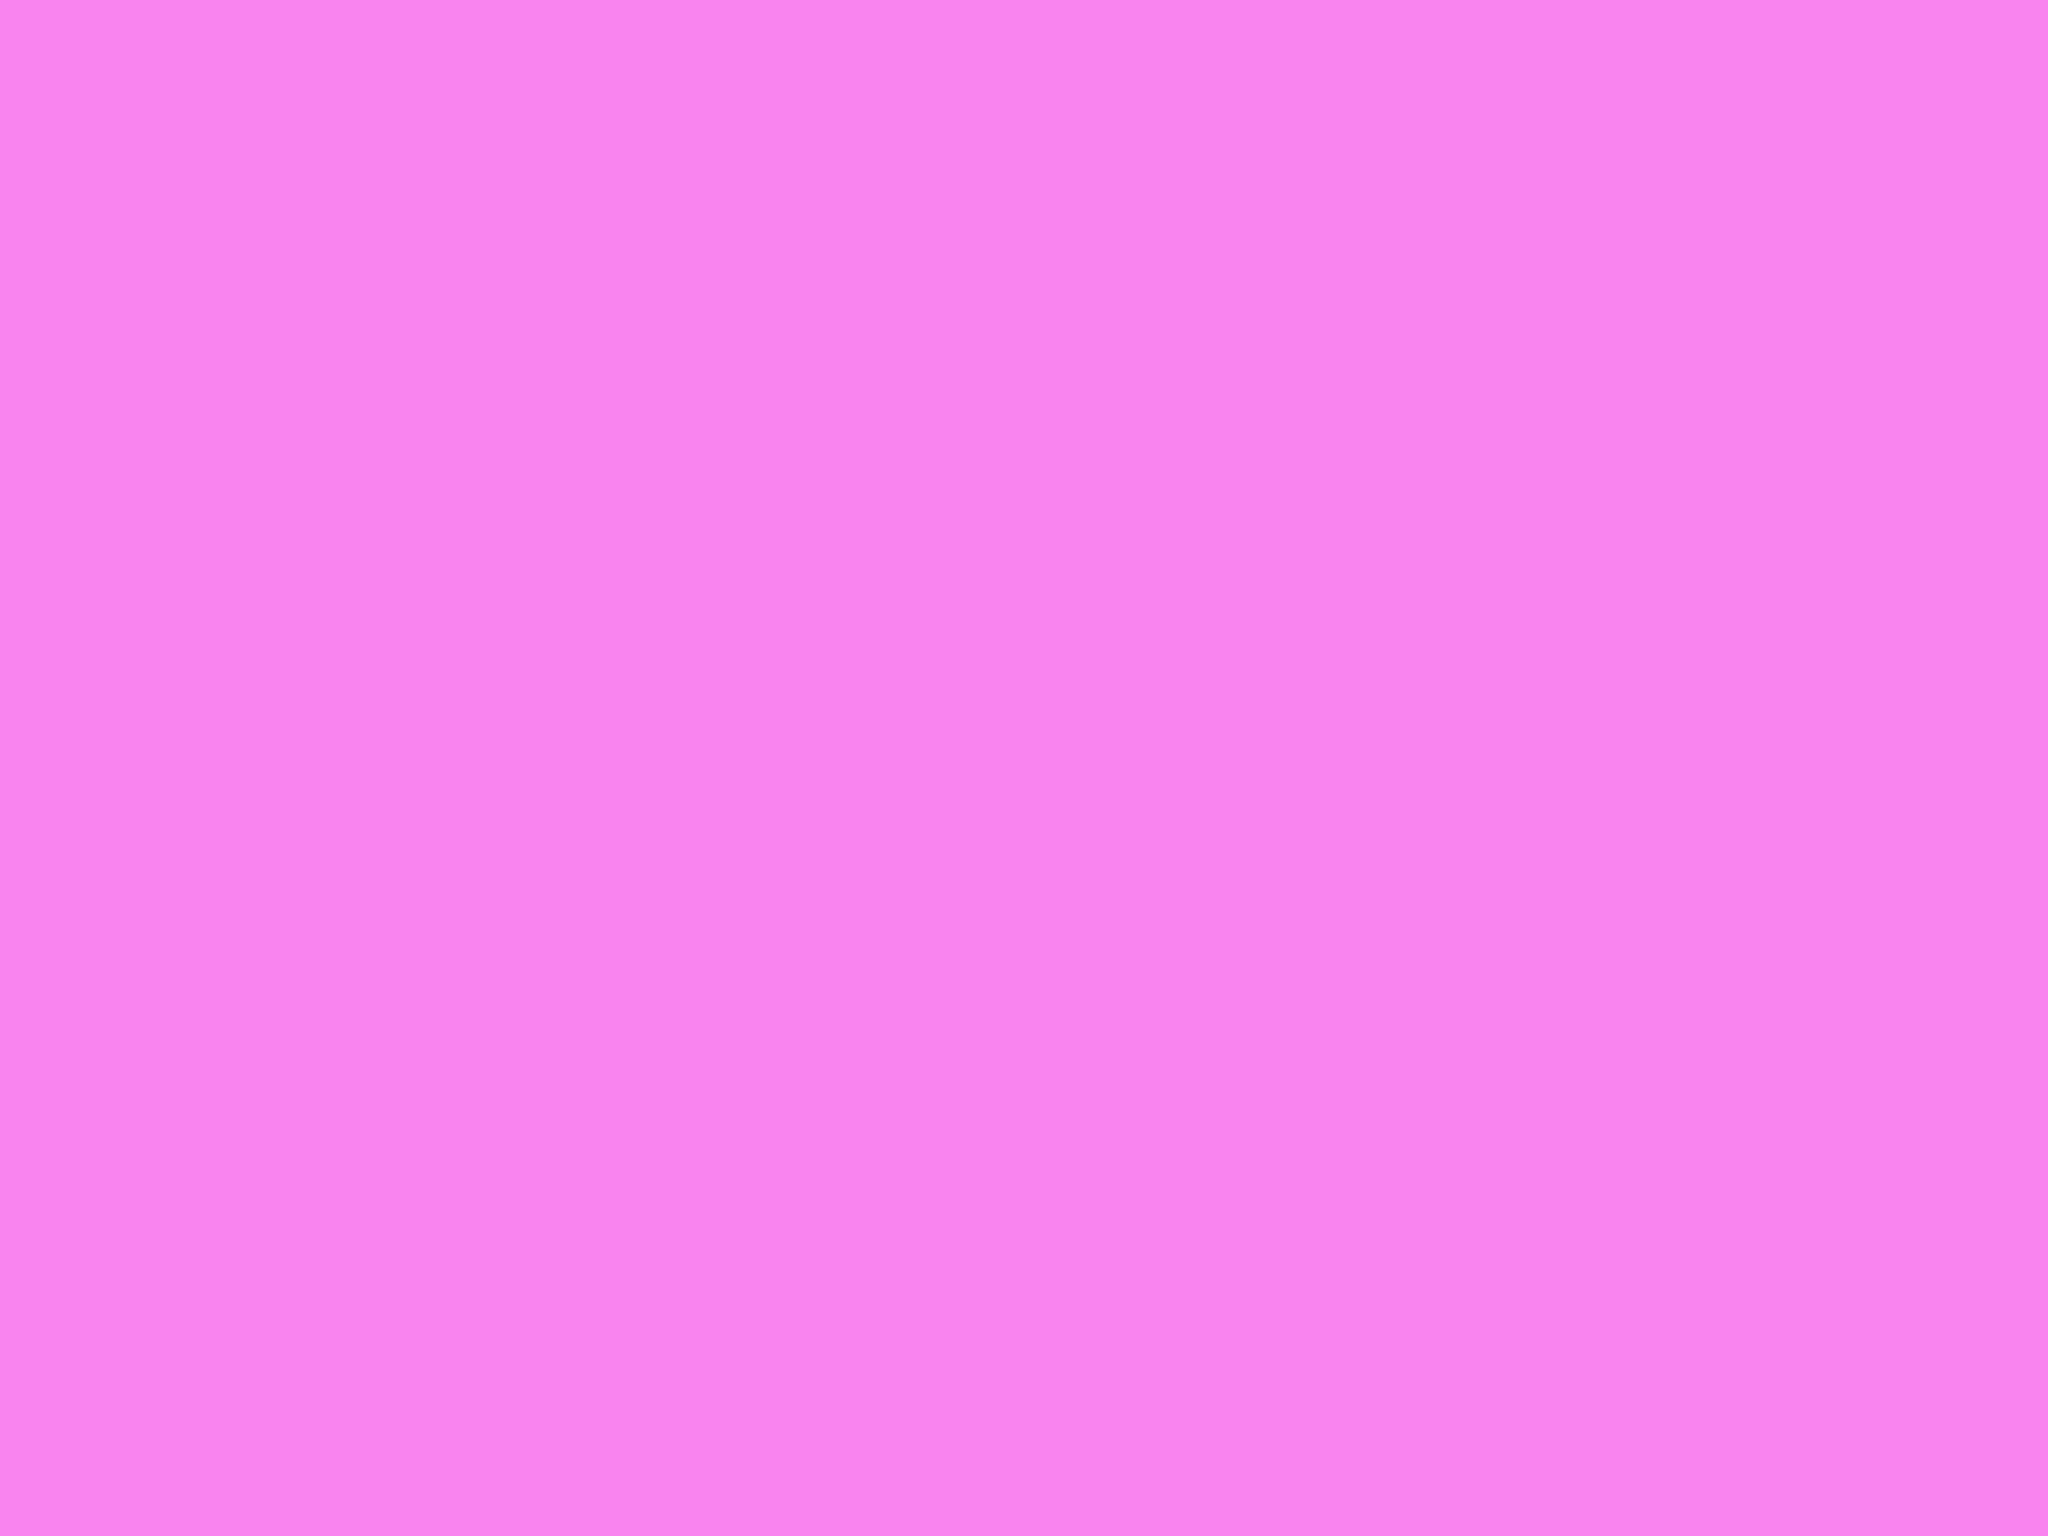 2048x1536 Light Fuchsia Pink Solid Color Background